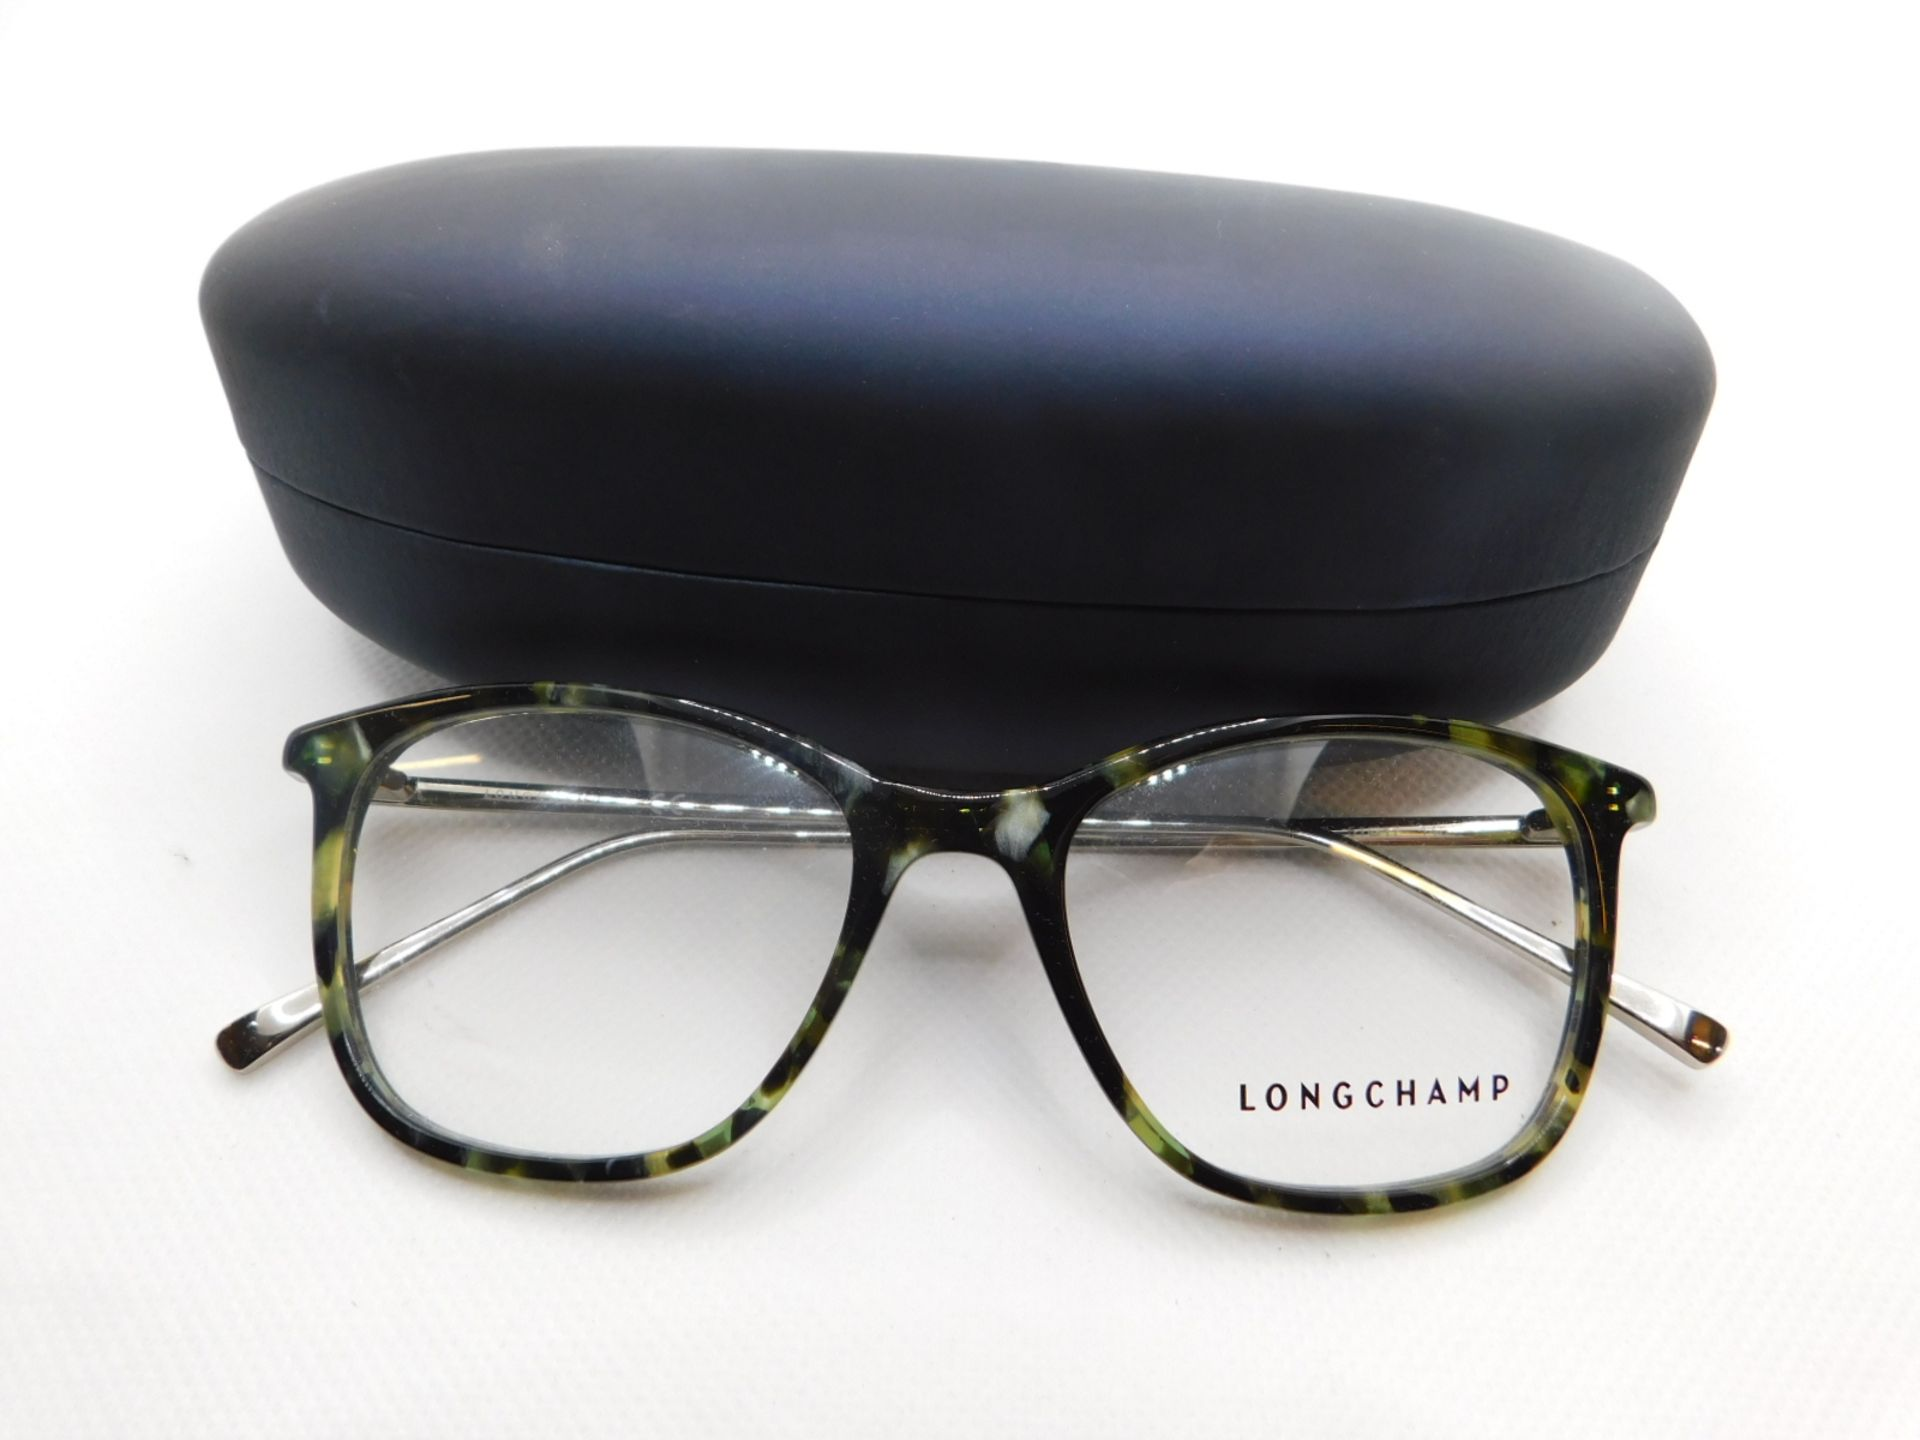 1 LONGCHAMP PAIR OF GLASSES FRAME WITH CASE MODEL LO2606 RRP £99.99